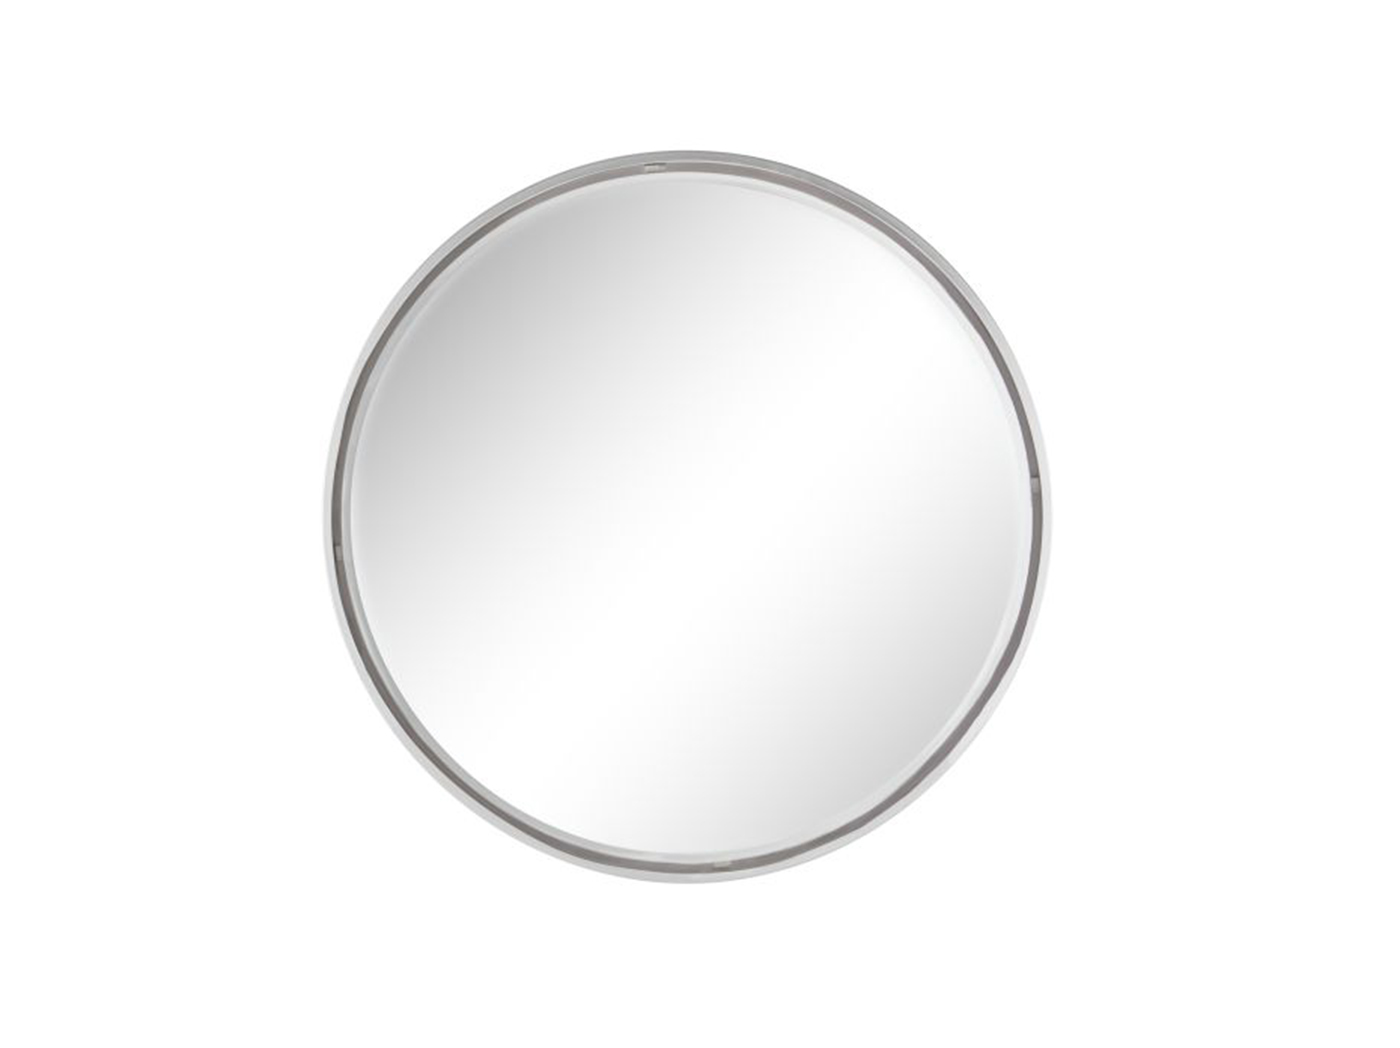 Silver Metal Round Wall Mirror 36""